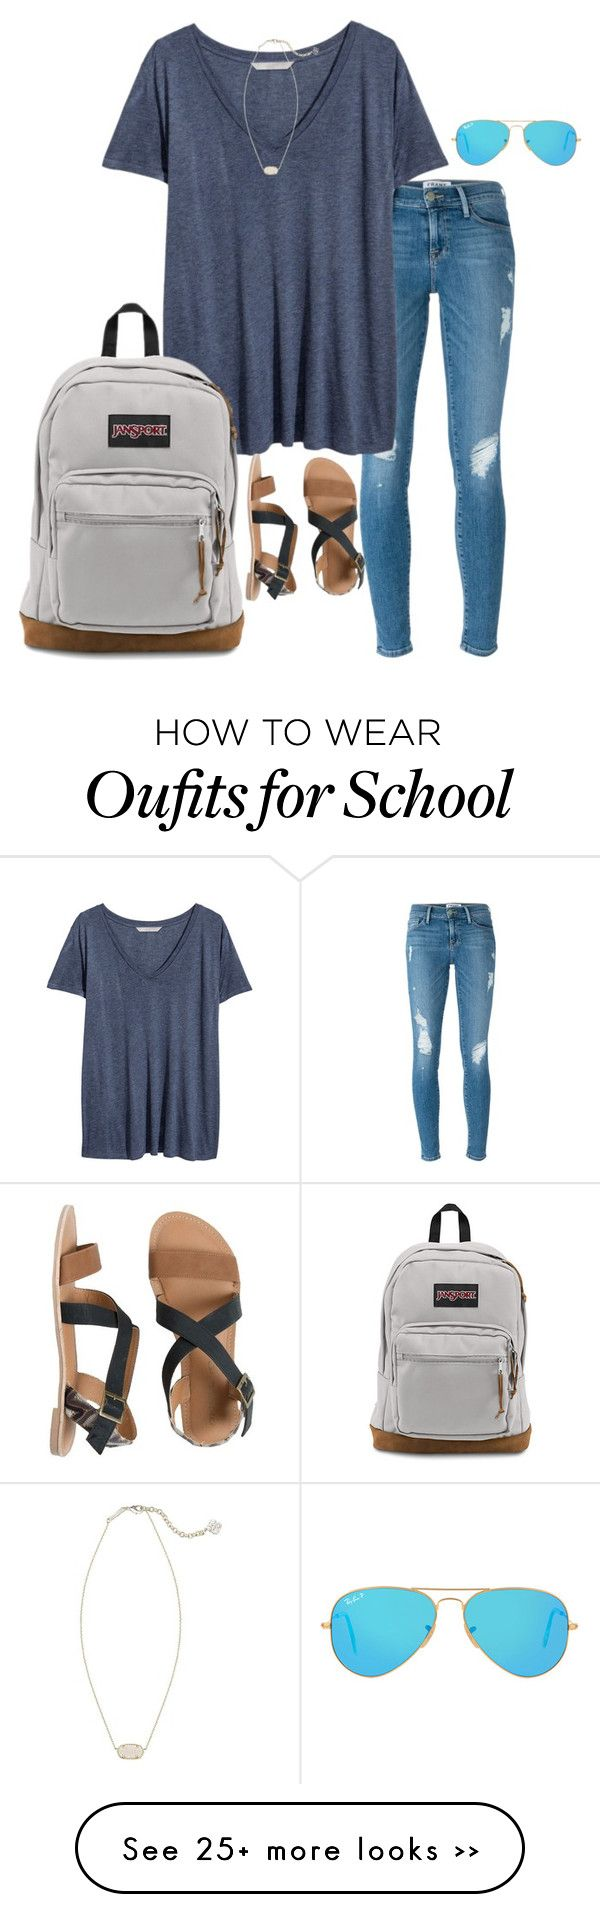 featuring Frame Denim, H&M, JanSport, Ray-Ban, IPANEMA and Kendra Scott